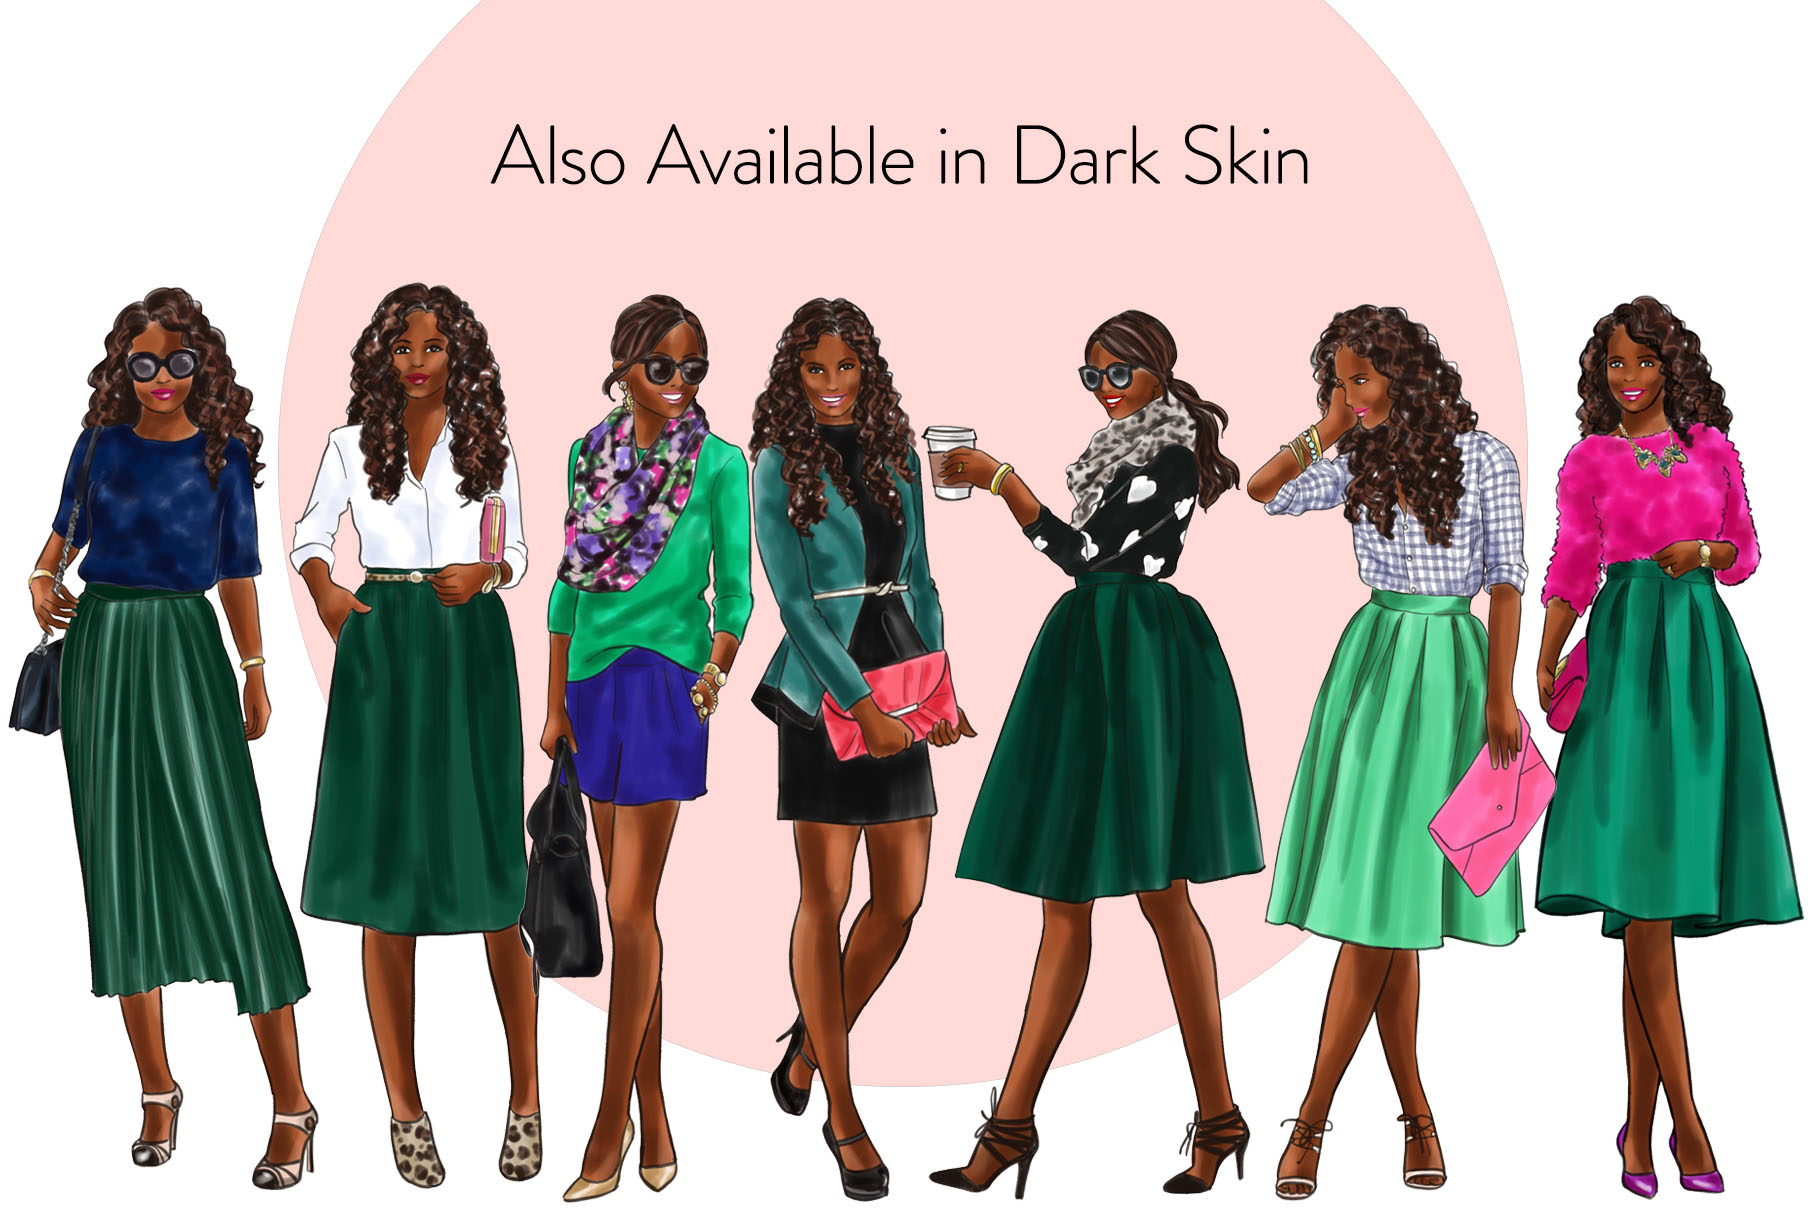 Fashion illustration clipart - Girls in Green 2 - Light Skin example image 4